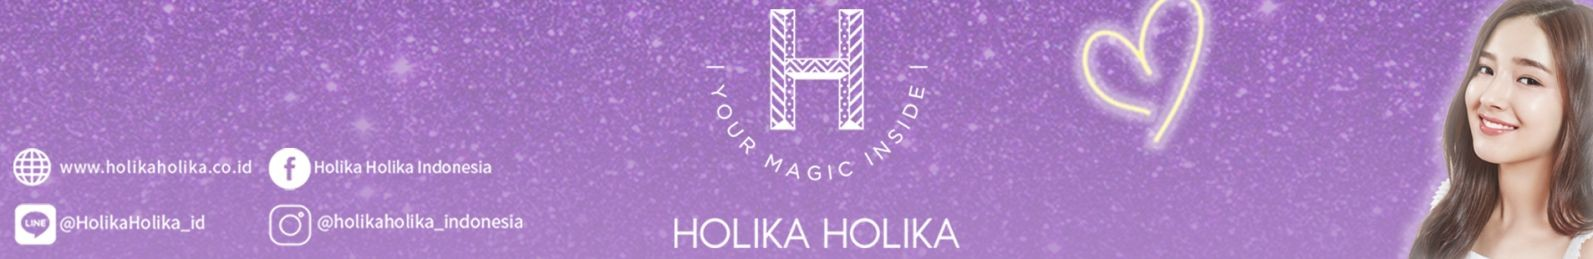 Holika Holika Indonesia